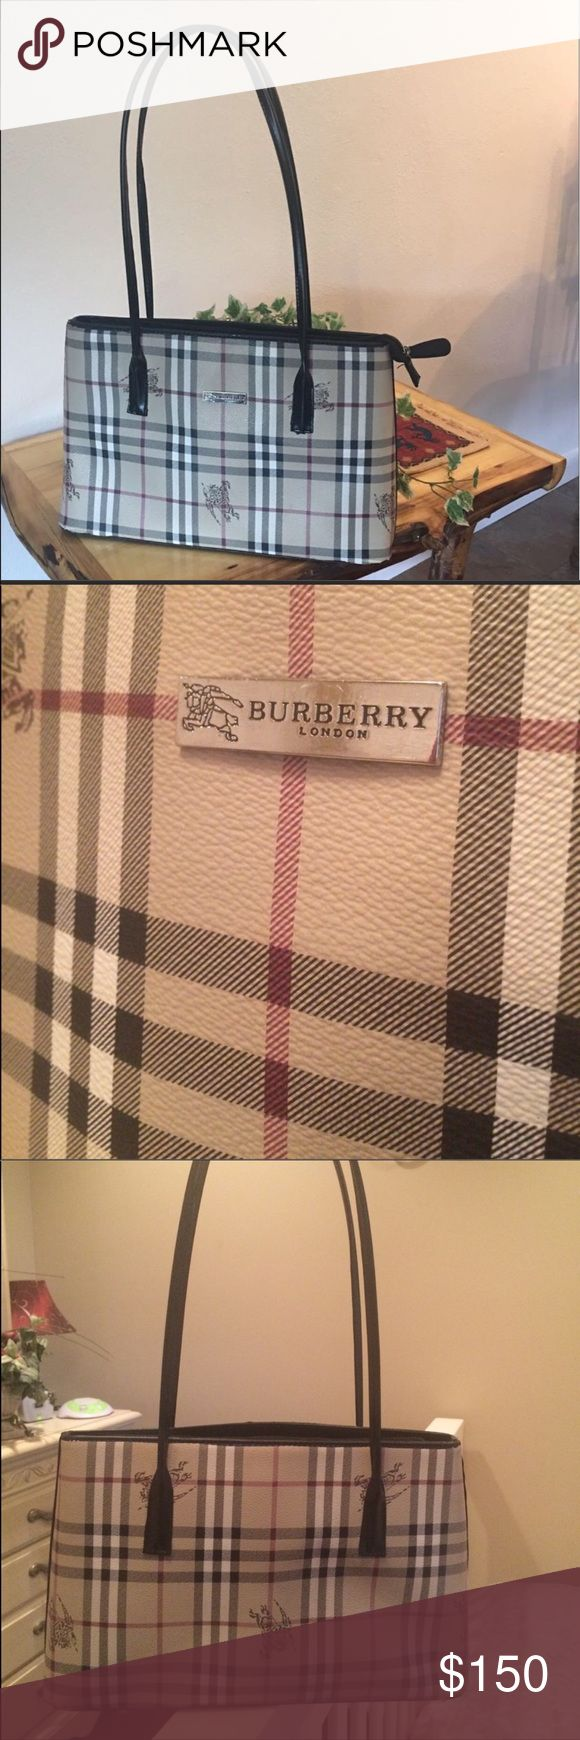 100% Authentic Used Burberry satchel This is a gorgeous everyday leather Burberry satchel. At a first glance it looks flawless, but it has some flaws as seen in the picture. Inside is very clean & it still has TONS of life! It is the medium size & fits tons of our everyday crap 😁😂 Priced to sell!! can sell lower on 🅿️🅿️ I will only trade for an apple watch or an authentic LV (a fair trade of course). Burberry Bags Satchels